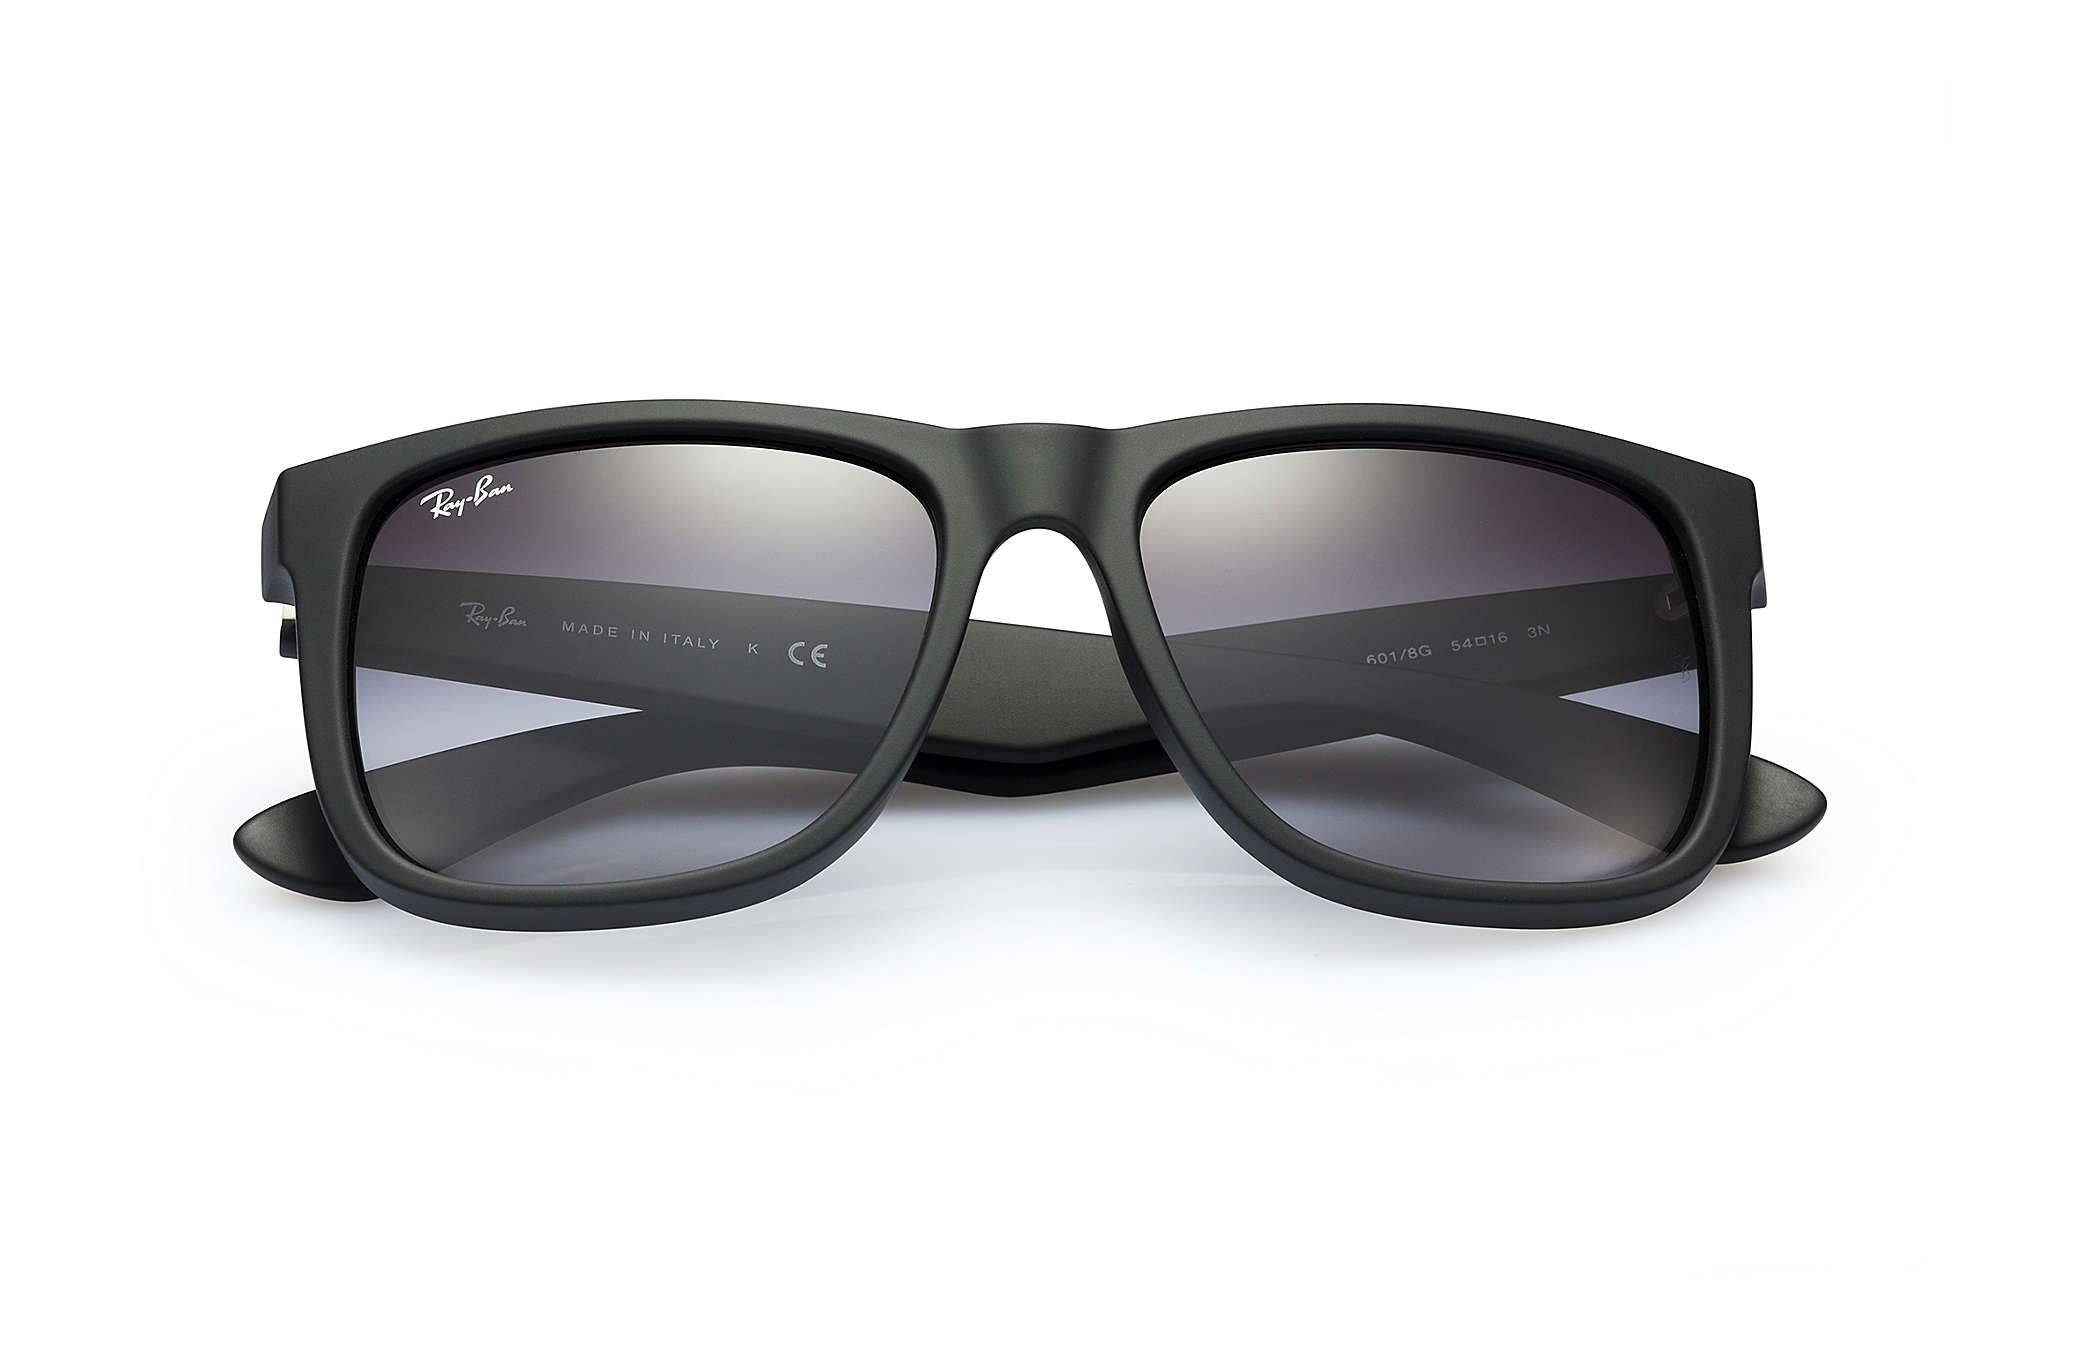 8f22cd0f406 +Browse. WOMEN · MEN · KIDS · HOME · BEAUTY · HANDBAGS · JEWELRY   WATCHES  · Ray-Ban RB 4165 601 New Wayfarer Rectangle Justin Matte Black Rubber  Sunglasses ...